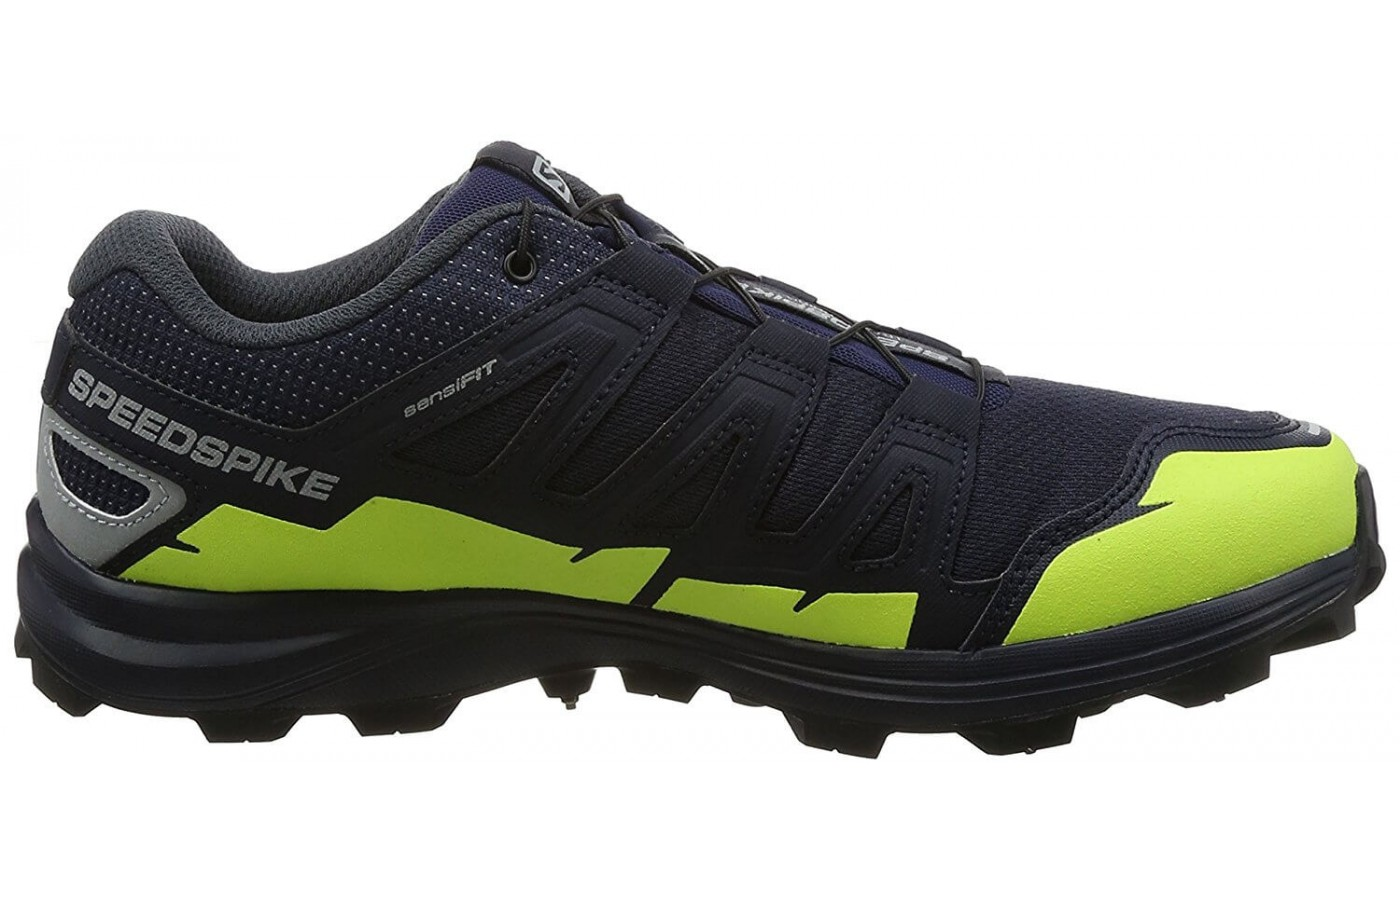 The Salomon Speedspike CS features a ClimaShield waterproof forefoot layer